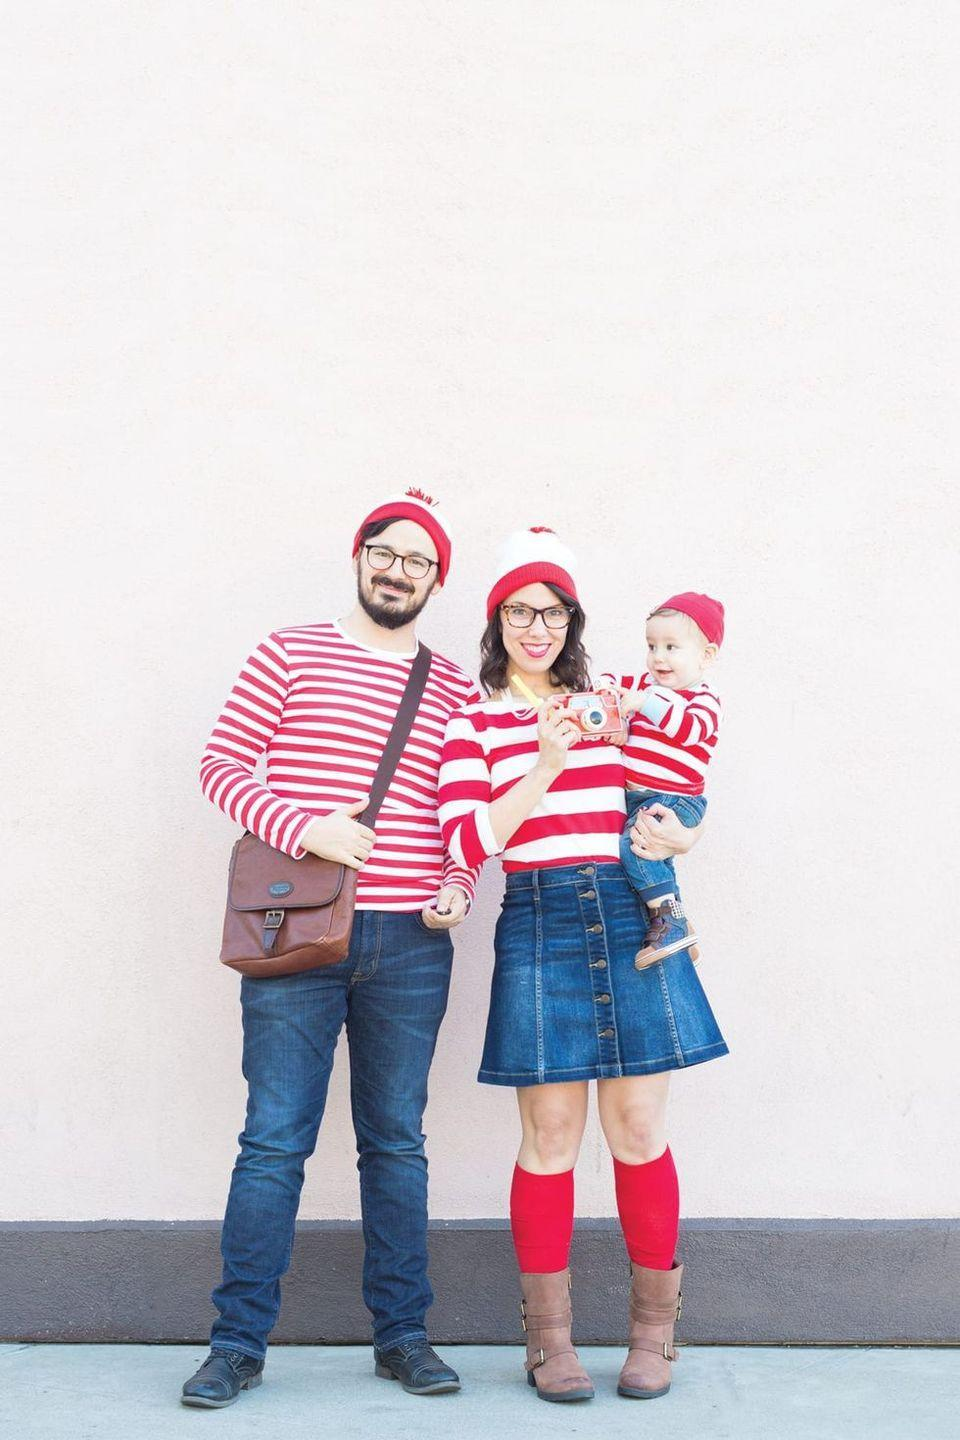 """<p>It couldn't be easier to bring this costume idea to life: Dress everyone up in red-and-white stripes, then add matching beanies.</p><p><strong>Get the tutorial at <a href=""""https://lovelyindeed.com/wheres-waldo-family-halloween-costumes/"""" rel=""""nofollow noopener"""" target=""""_blank"""" data-ylk=""""slk:Lovely Indeed"""" class=""""link rapid-noclick-resp"""">Lovely Indeed</a>.</strong></p><p><a class=""""link rapid-noclick-resp"""" href=""""https://go.redirectingat.com?id=74968X1596630&url=https%3A%2F%2Fwww.walmart.com%2Fsearch%2F%3Fquery%3Dbeanies&sref=https%3A%2F%2Fwww.thepioneerwoman.com%2Fhome-lifestyle%2Fcrafts-diy%2Fg37066817%2Fhalloween-costumes-for-3-people%2F"""" rel=""""nofollow noopener"""" target=""""_blank"""" data-ylk=""""slk:SHOP BEANIES"""">SHOP BEANIES</a></p>"""